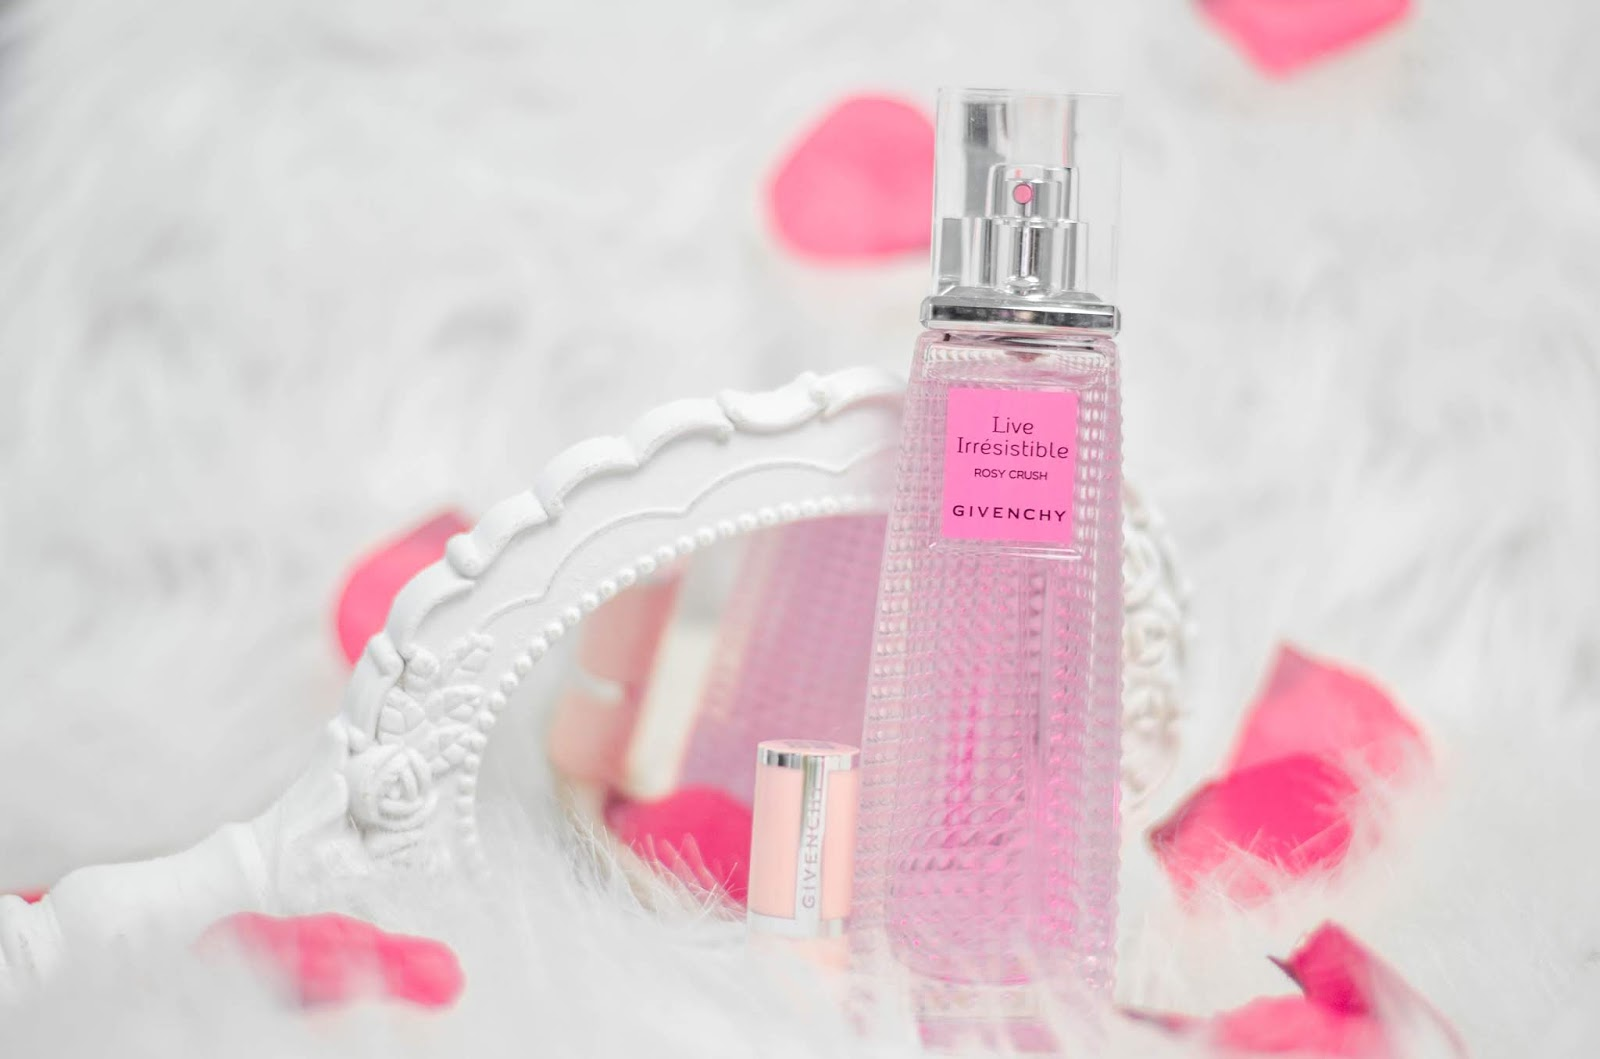 Live Irresistible Rosy Crush Givenchy MllexCeline Blog Lyon